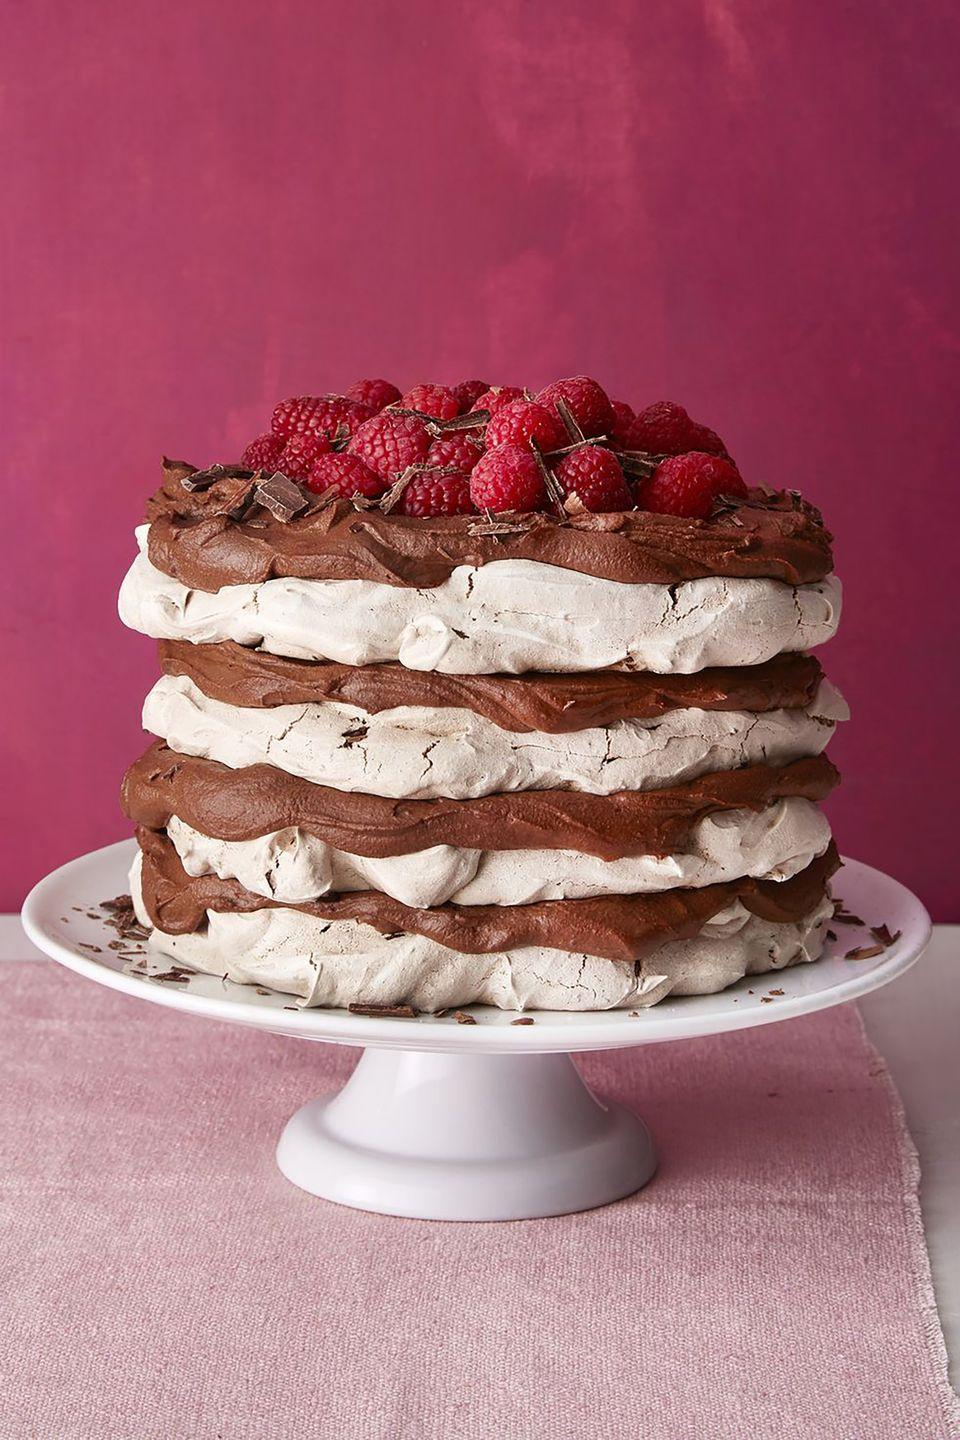 """<p>The fresh raspberries on top balance out the decadent layers of this chocolate meringue cake with chocolate mousse filling. </p><p><a href=""""https://www.womansday.com/food-recipes/food-drinks/a19124220/chocolate-meringue-layer-cake-recipe/"""" rel=""""nofollow noopener"""" target=""""_blank"""" data-ylk=""""slk:Get the recipe for Chocolate Meringue Layer Cake."""" class=""""link rapid-noclick-resp""""><em>Get the recipe for Chocolate Meringue Layer Cake.</em></a><br></p>"""